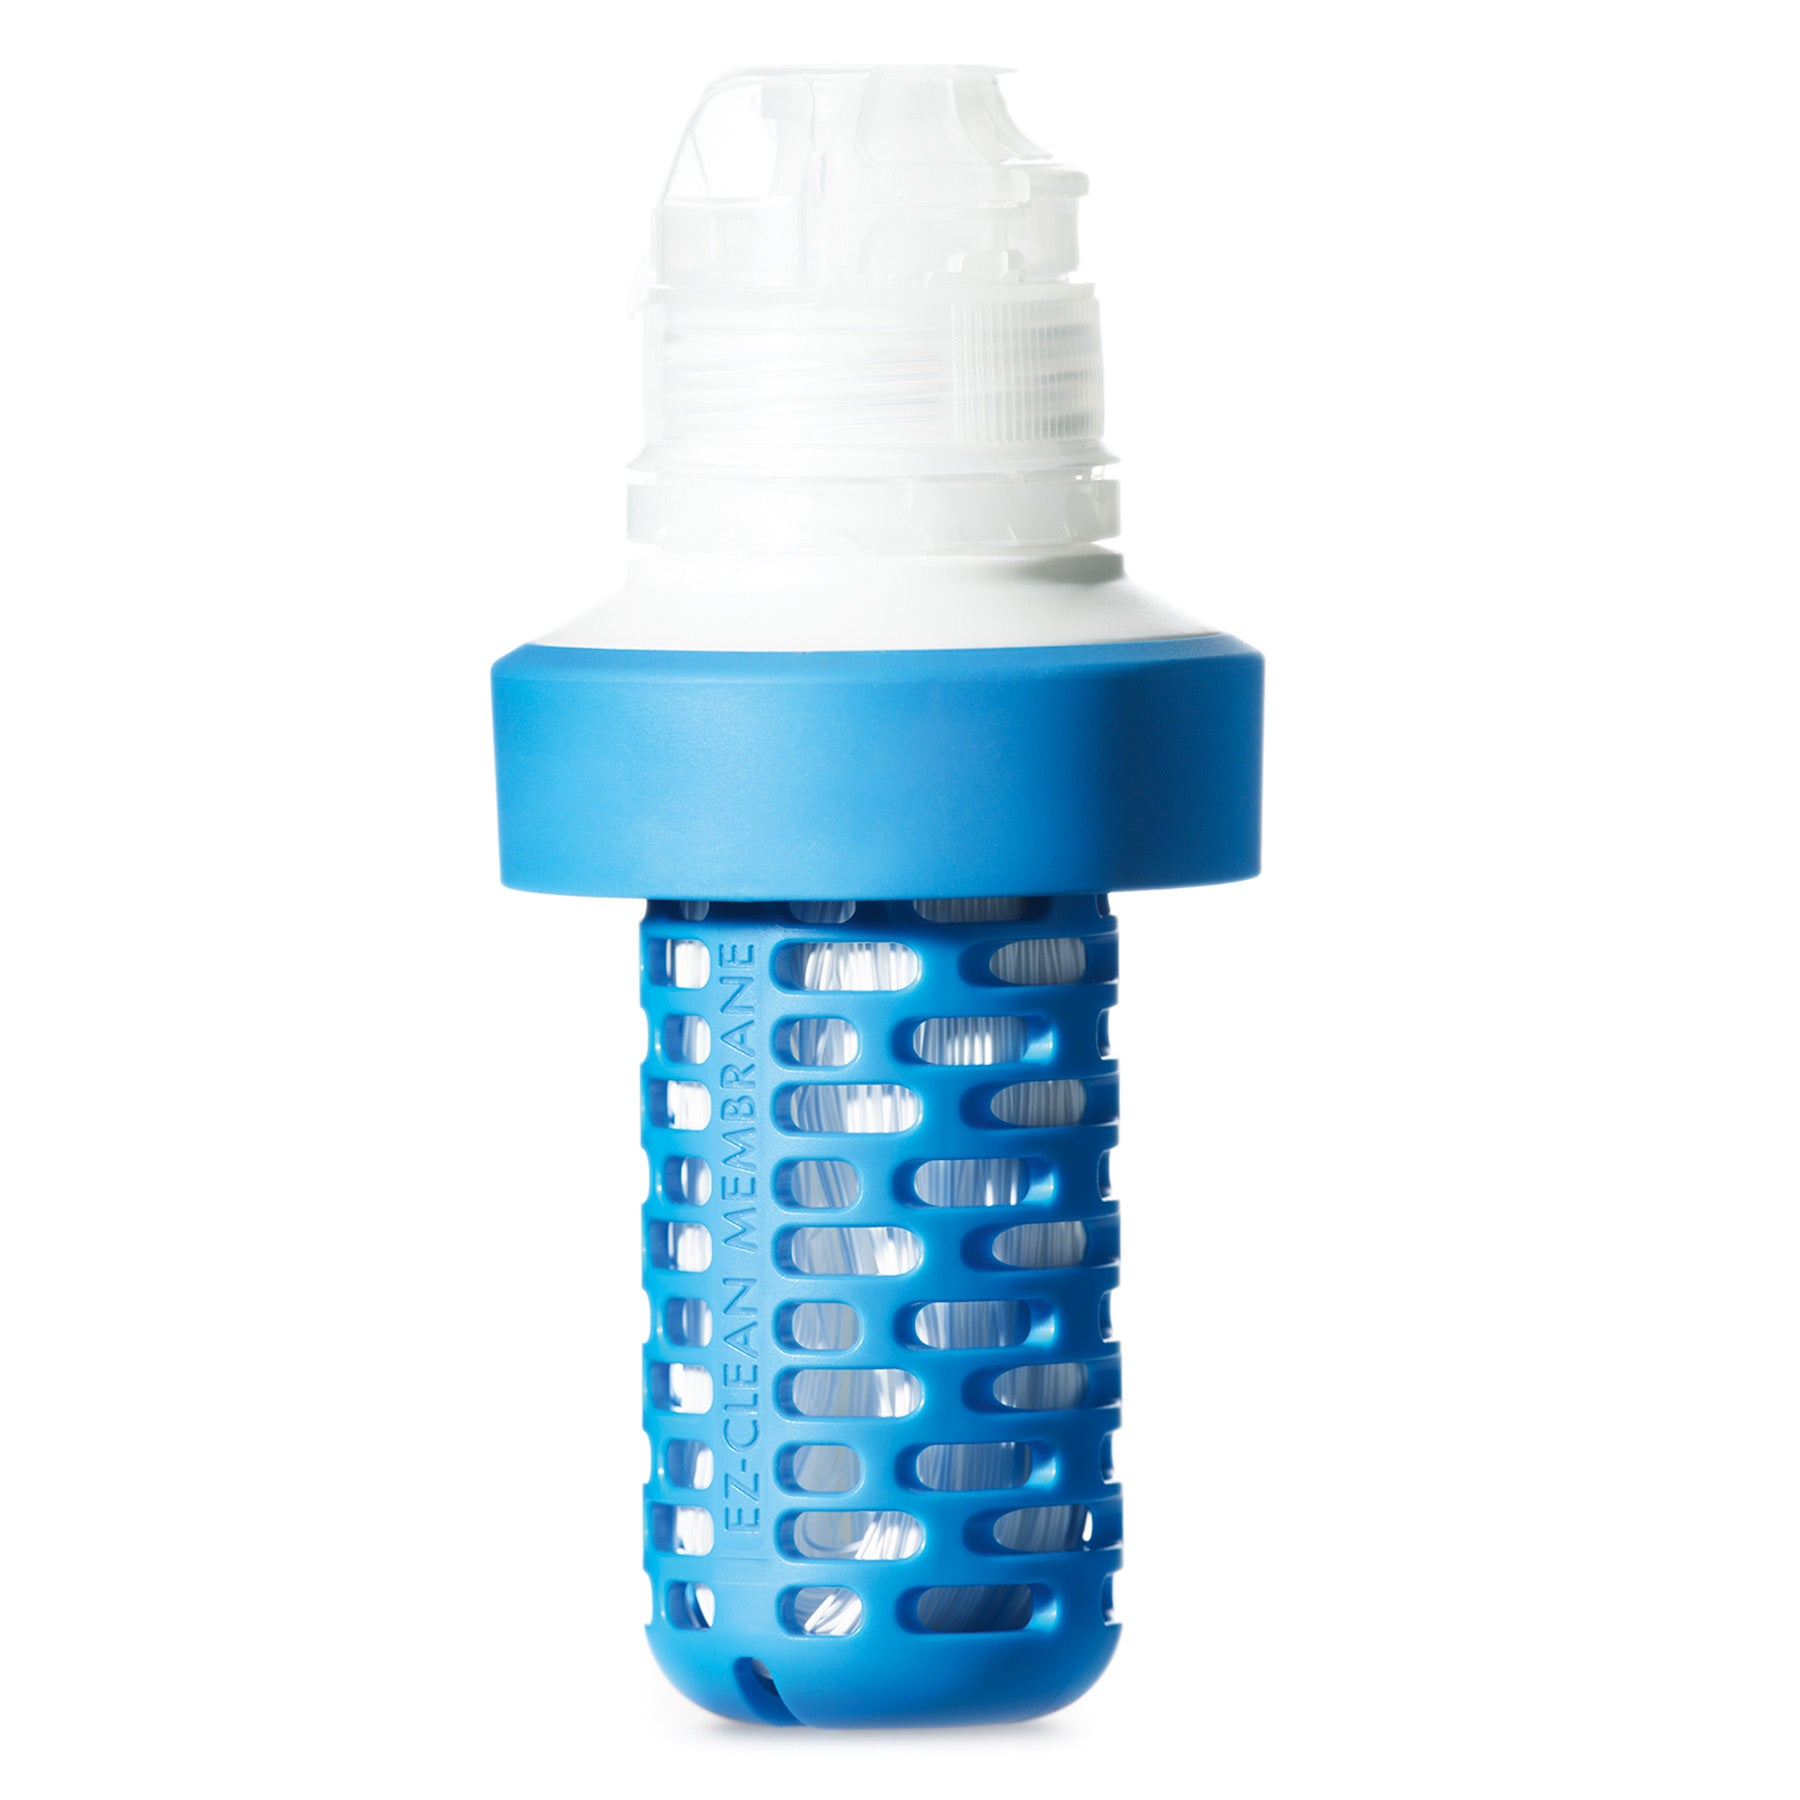 the befree filter cartridge